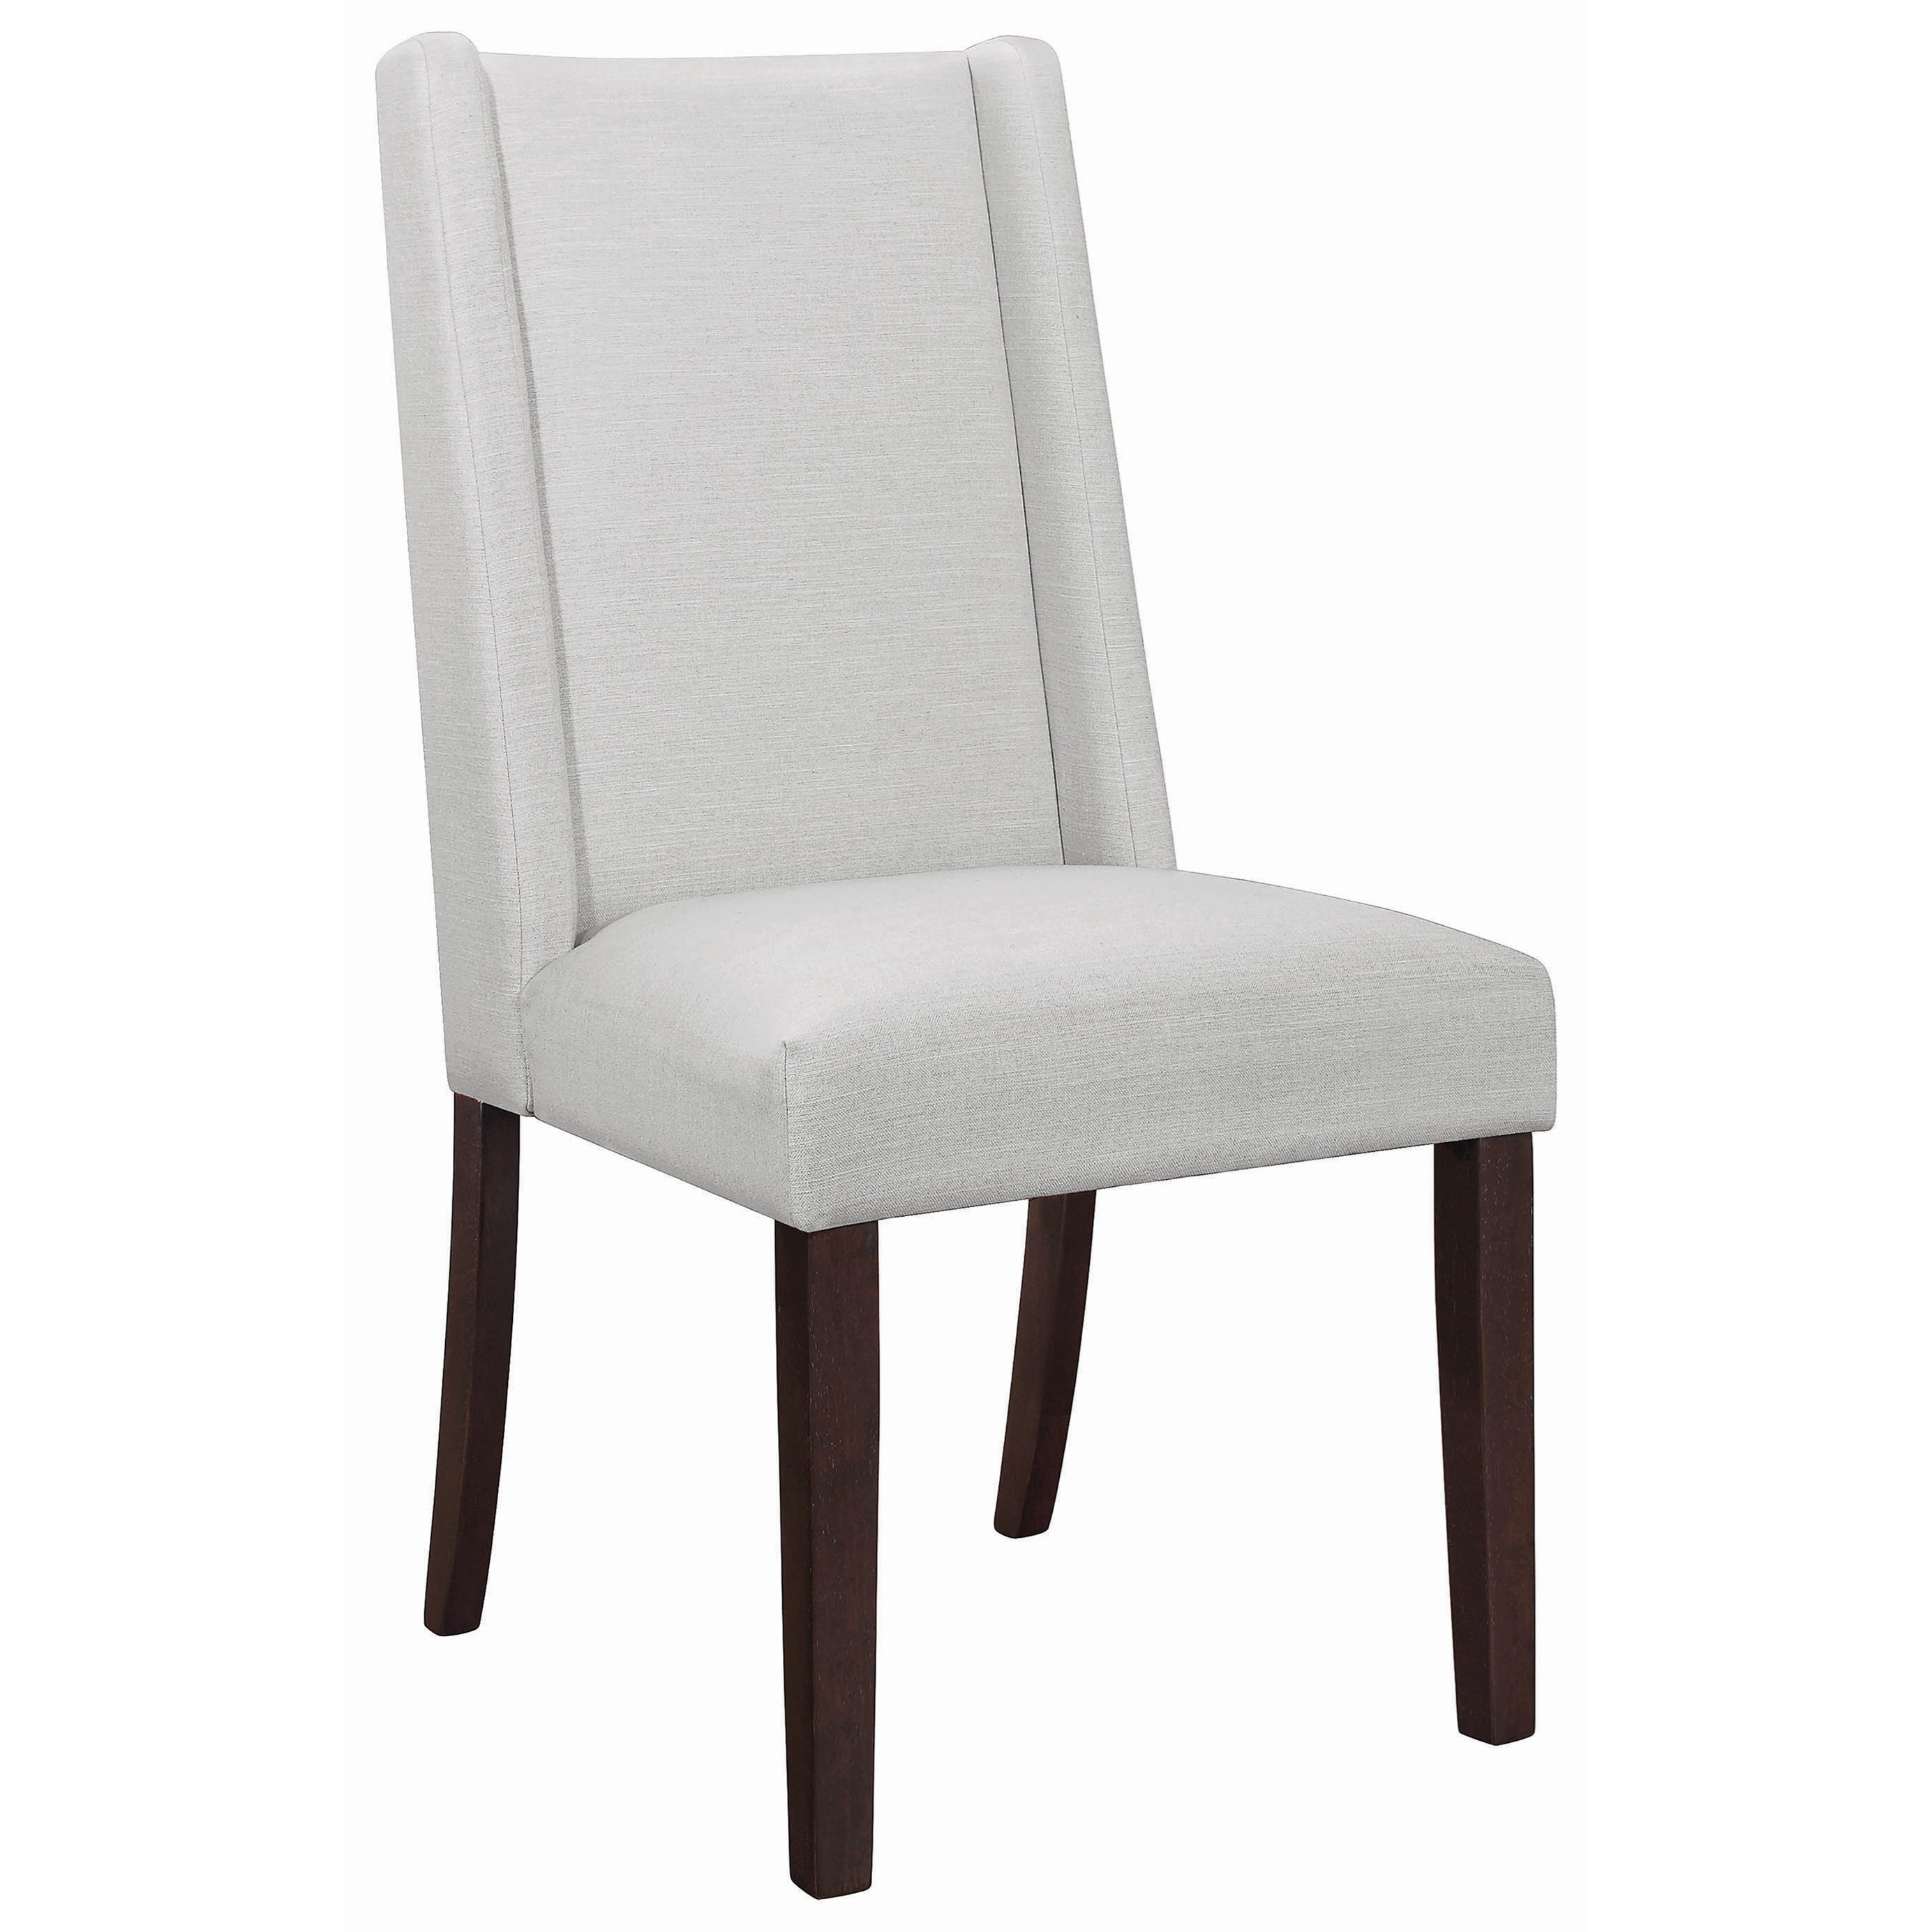 Coaster Libby Contemporary Dining Parson Chair A1